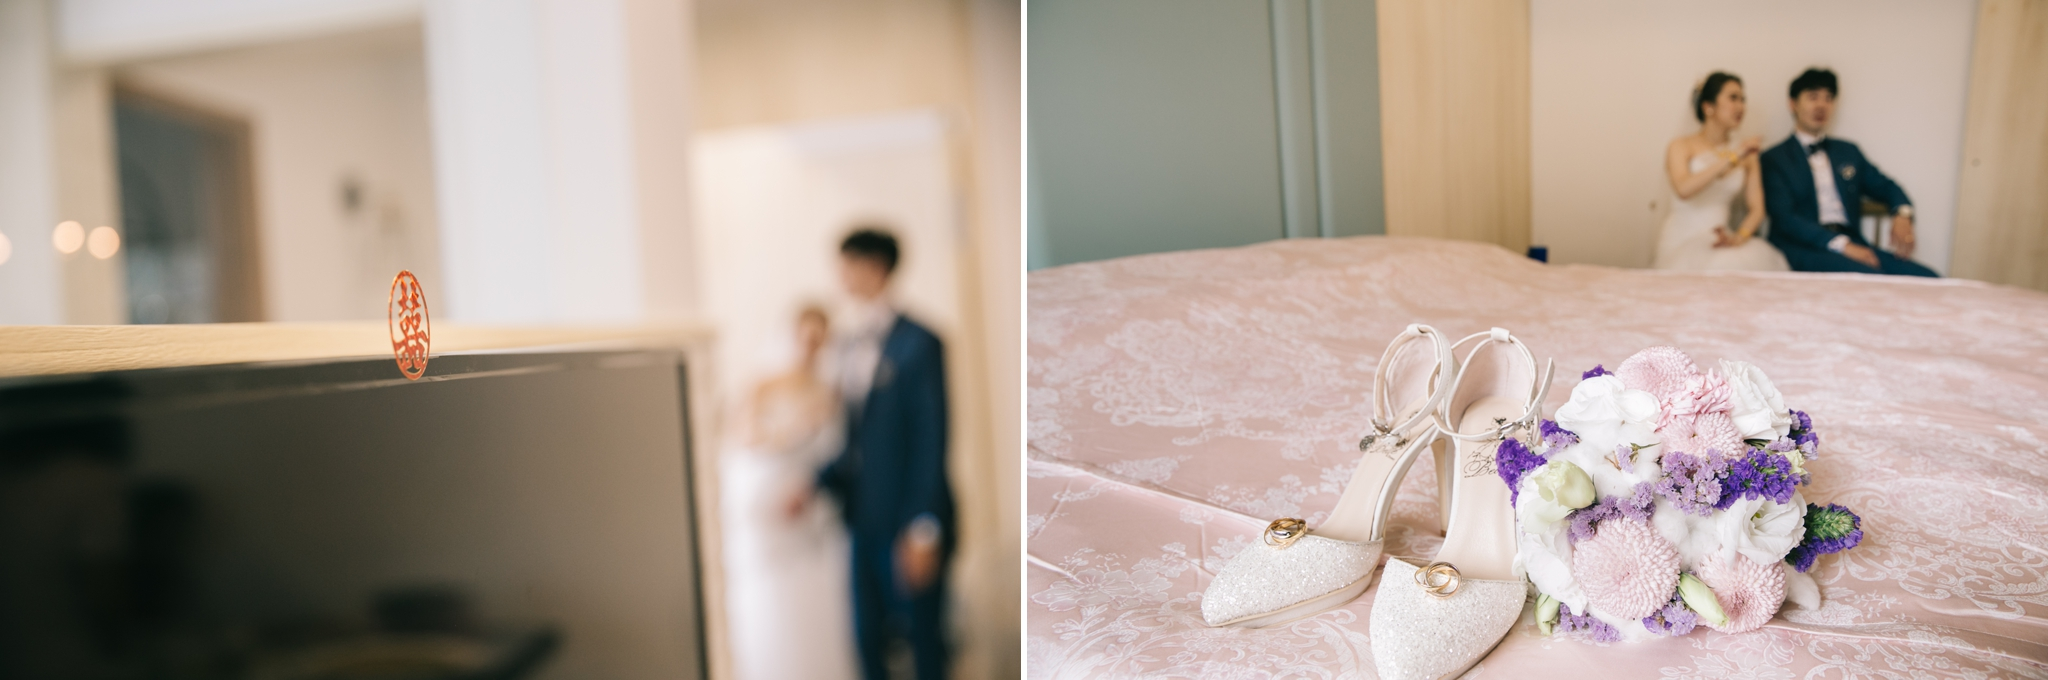 Keddy+Richard-wedding-新莊頤品飯店-141.jpg